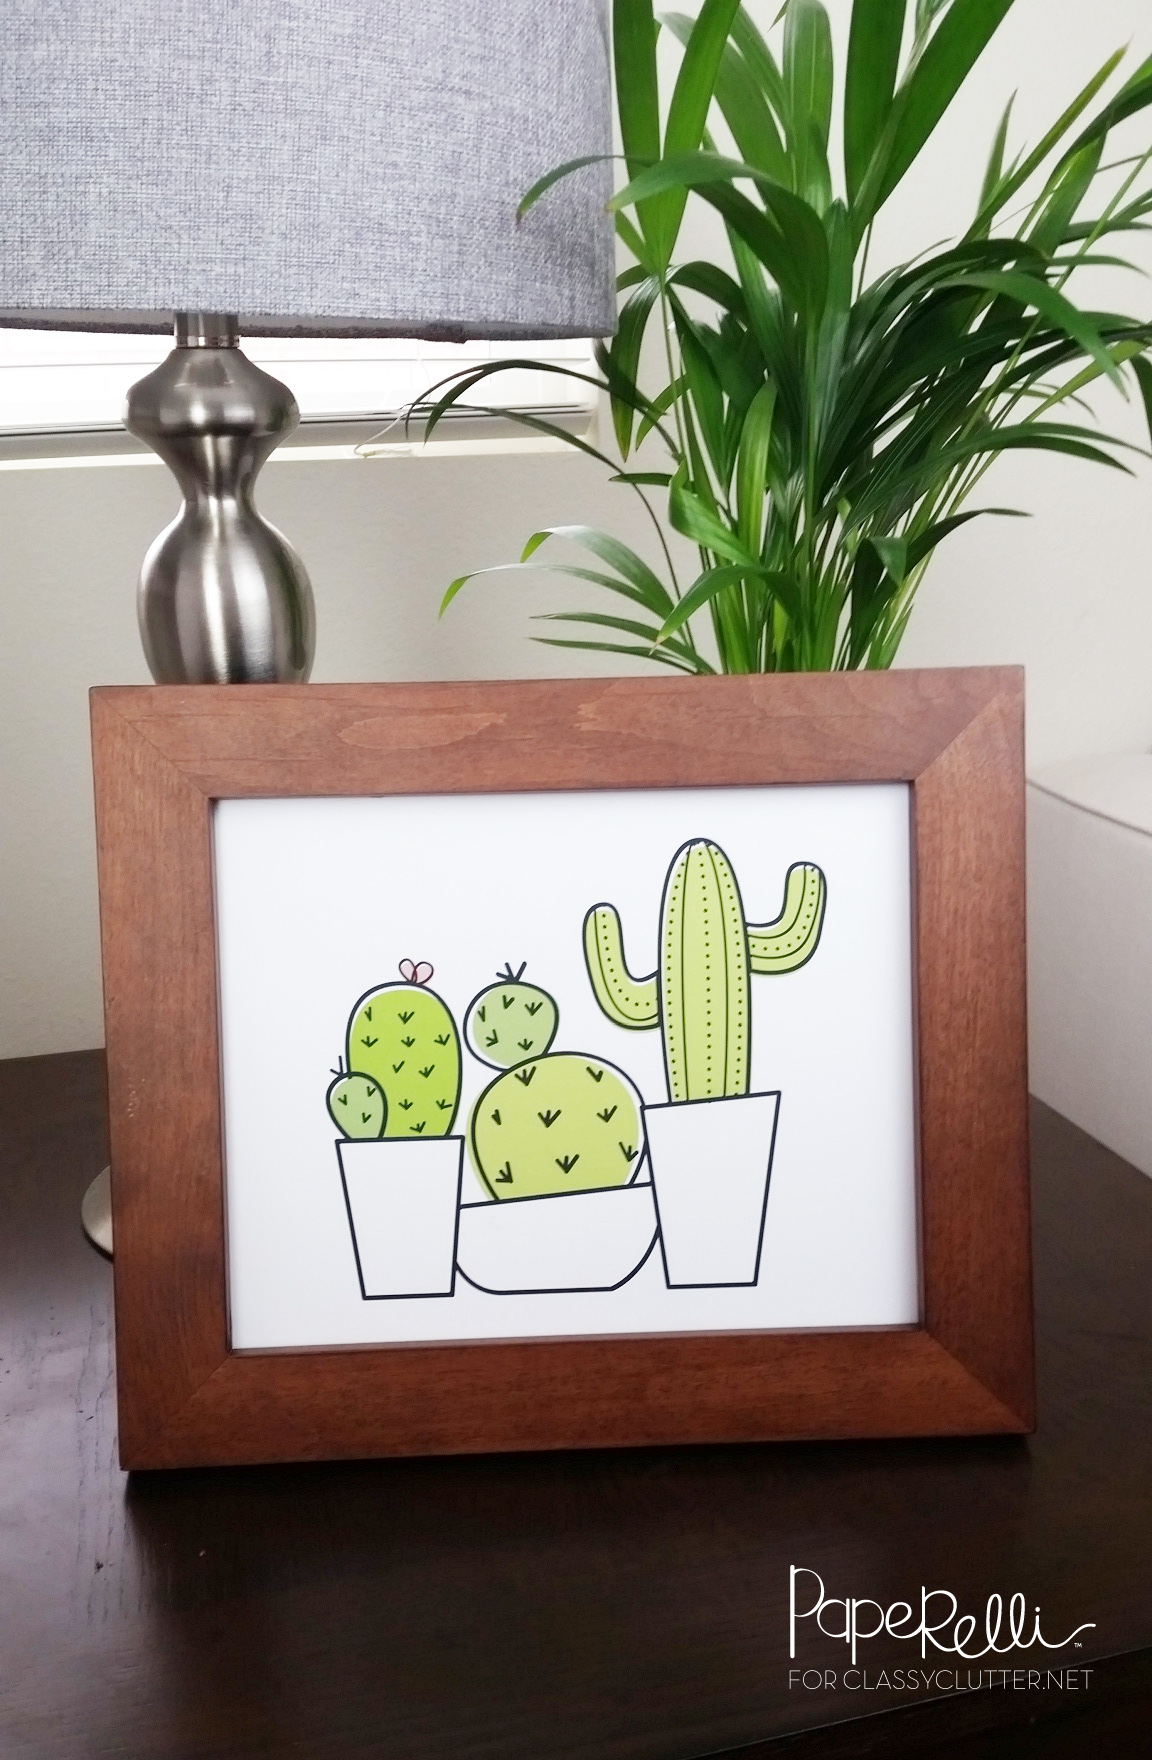 image relating to Cactus Printable referred to as Totally free Cactus Printable - Cly Muddle